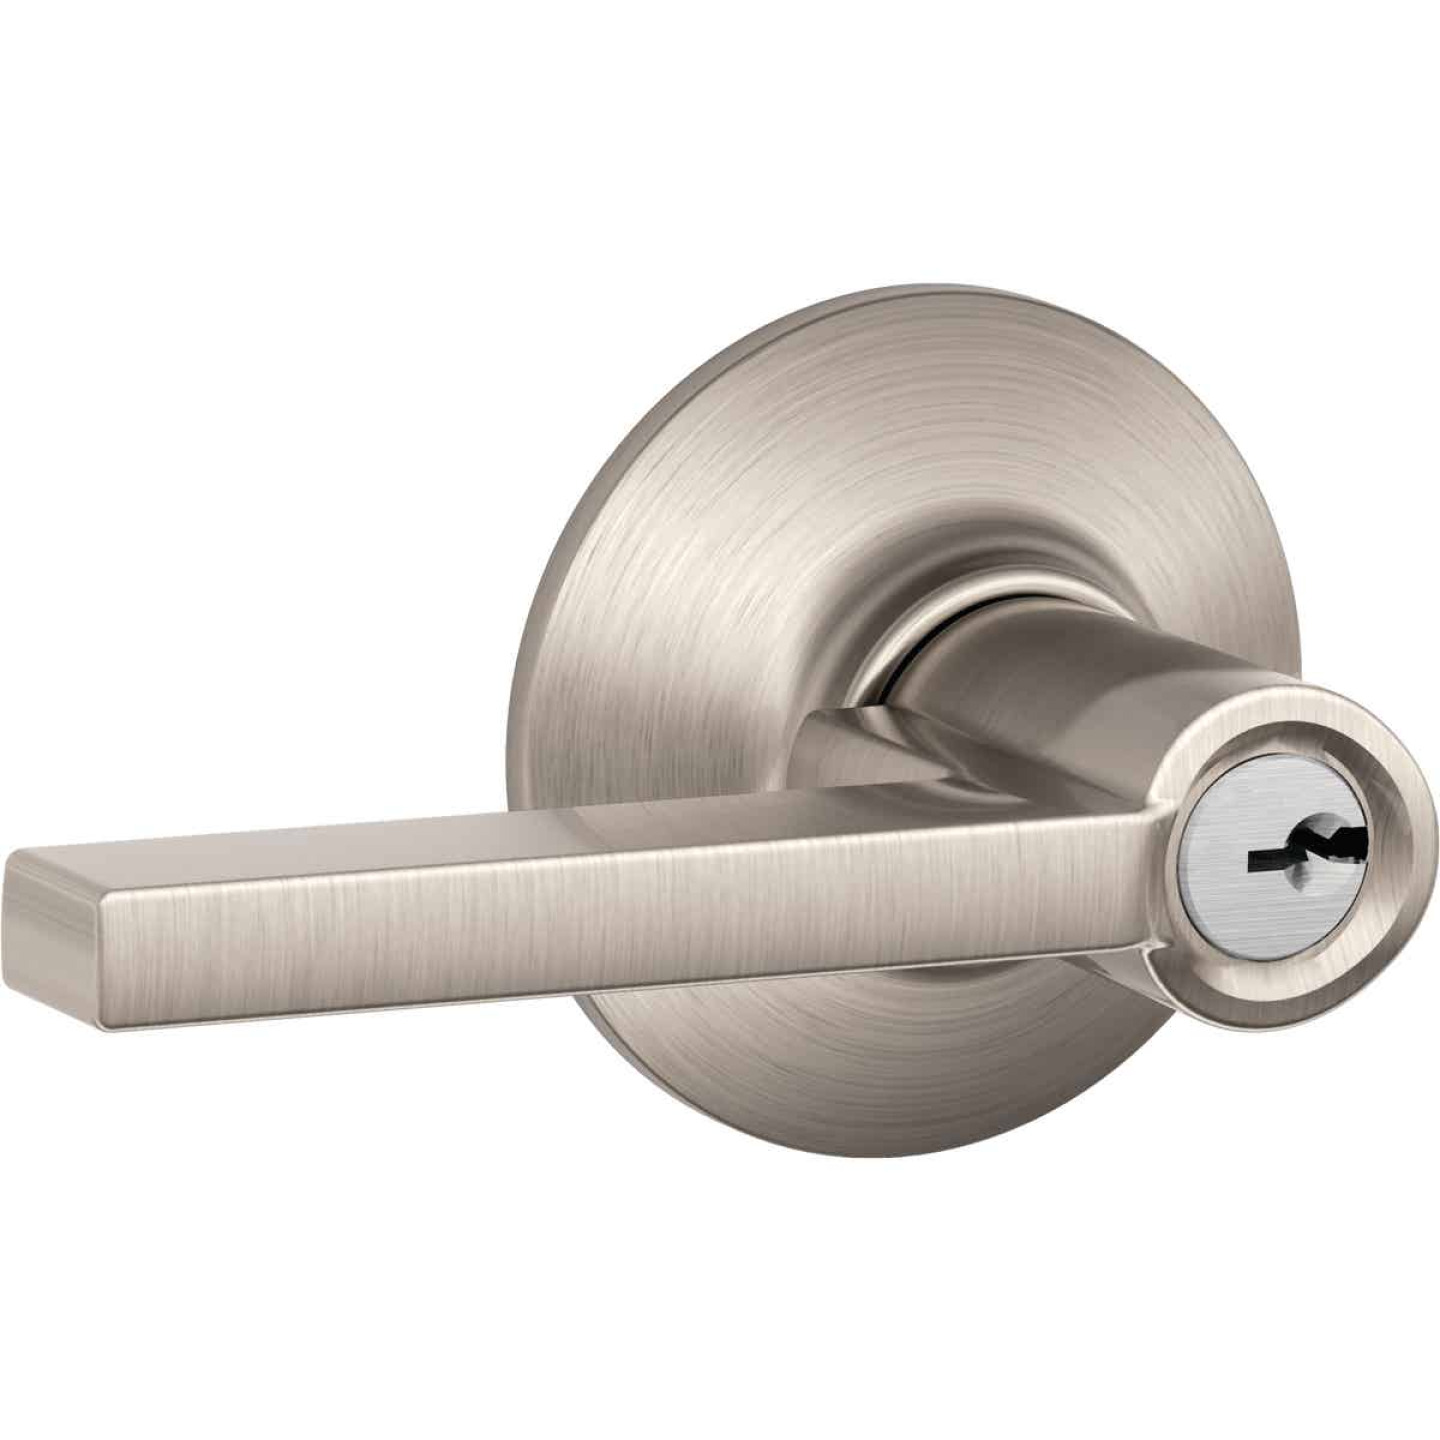 Schlage Latitude Satin Nickel Keyed Entry Door Lever Image 1